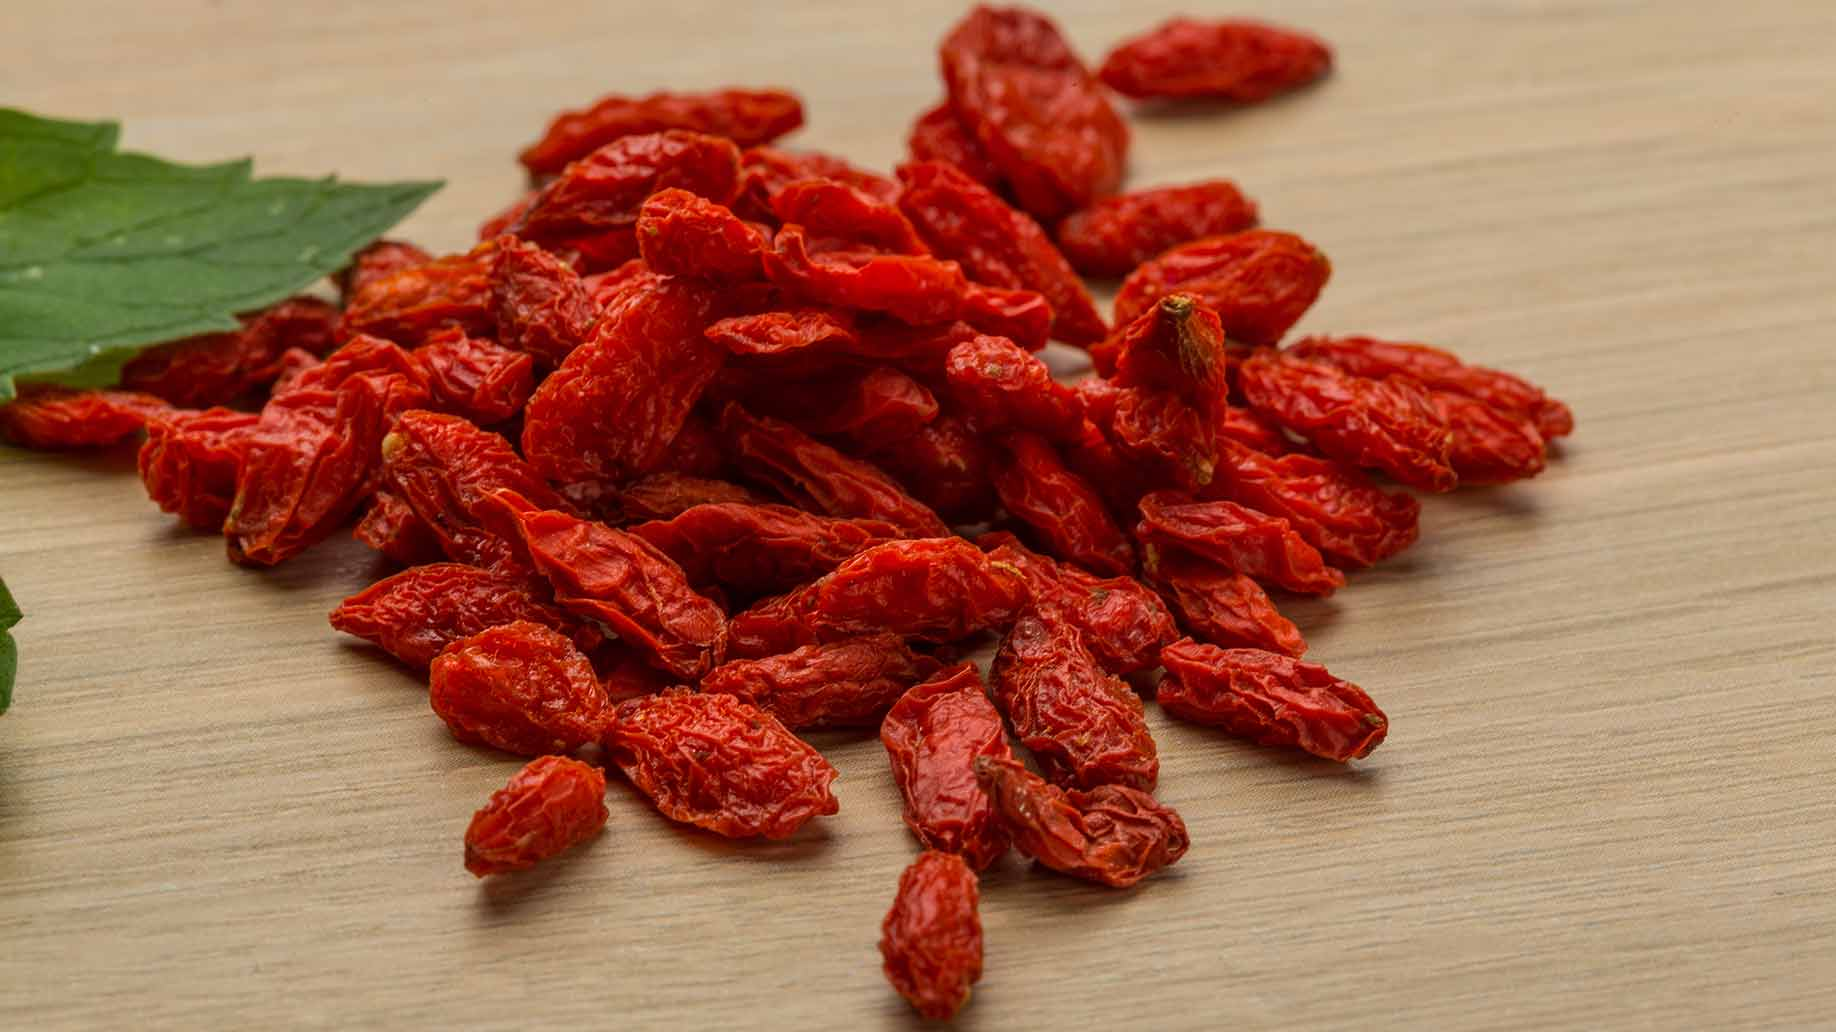 berberine red dried plant herb urinary tract infection uti natural remedies